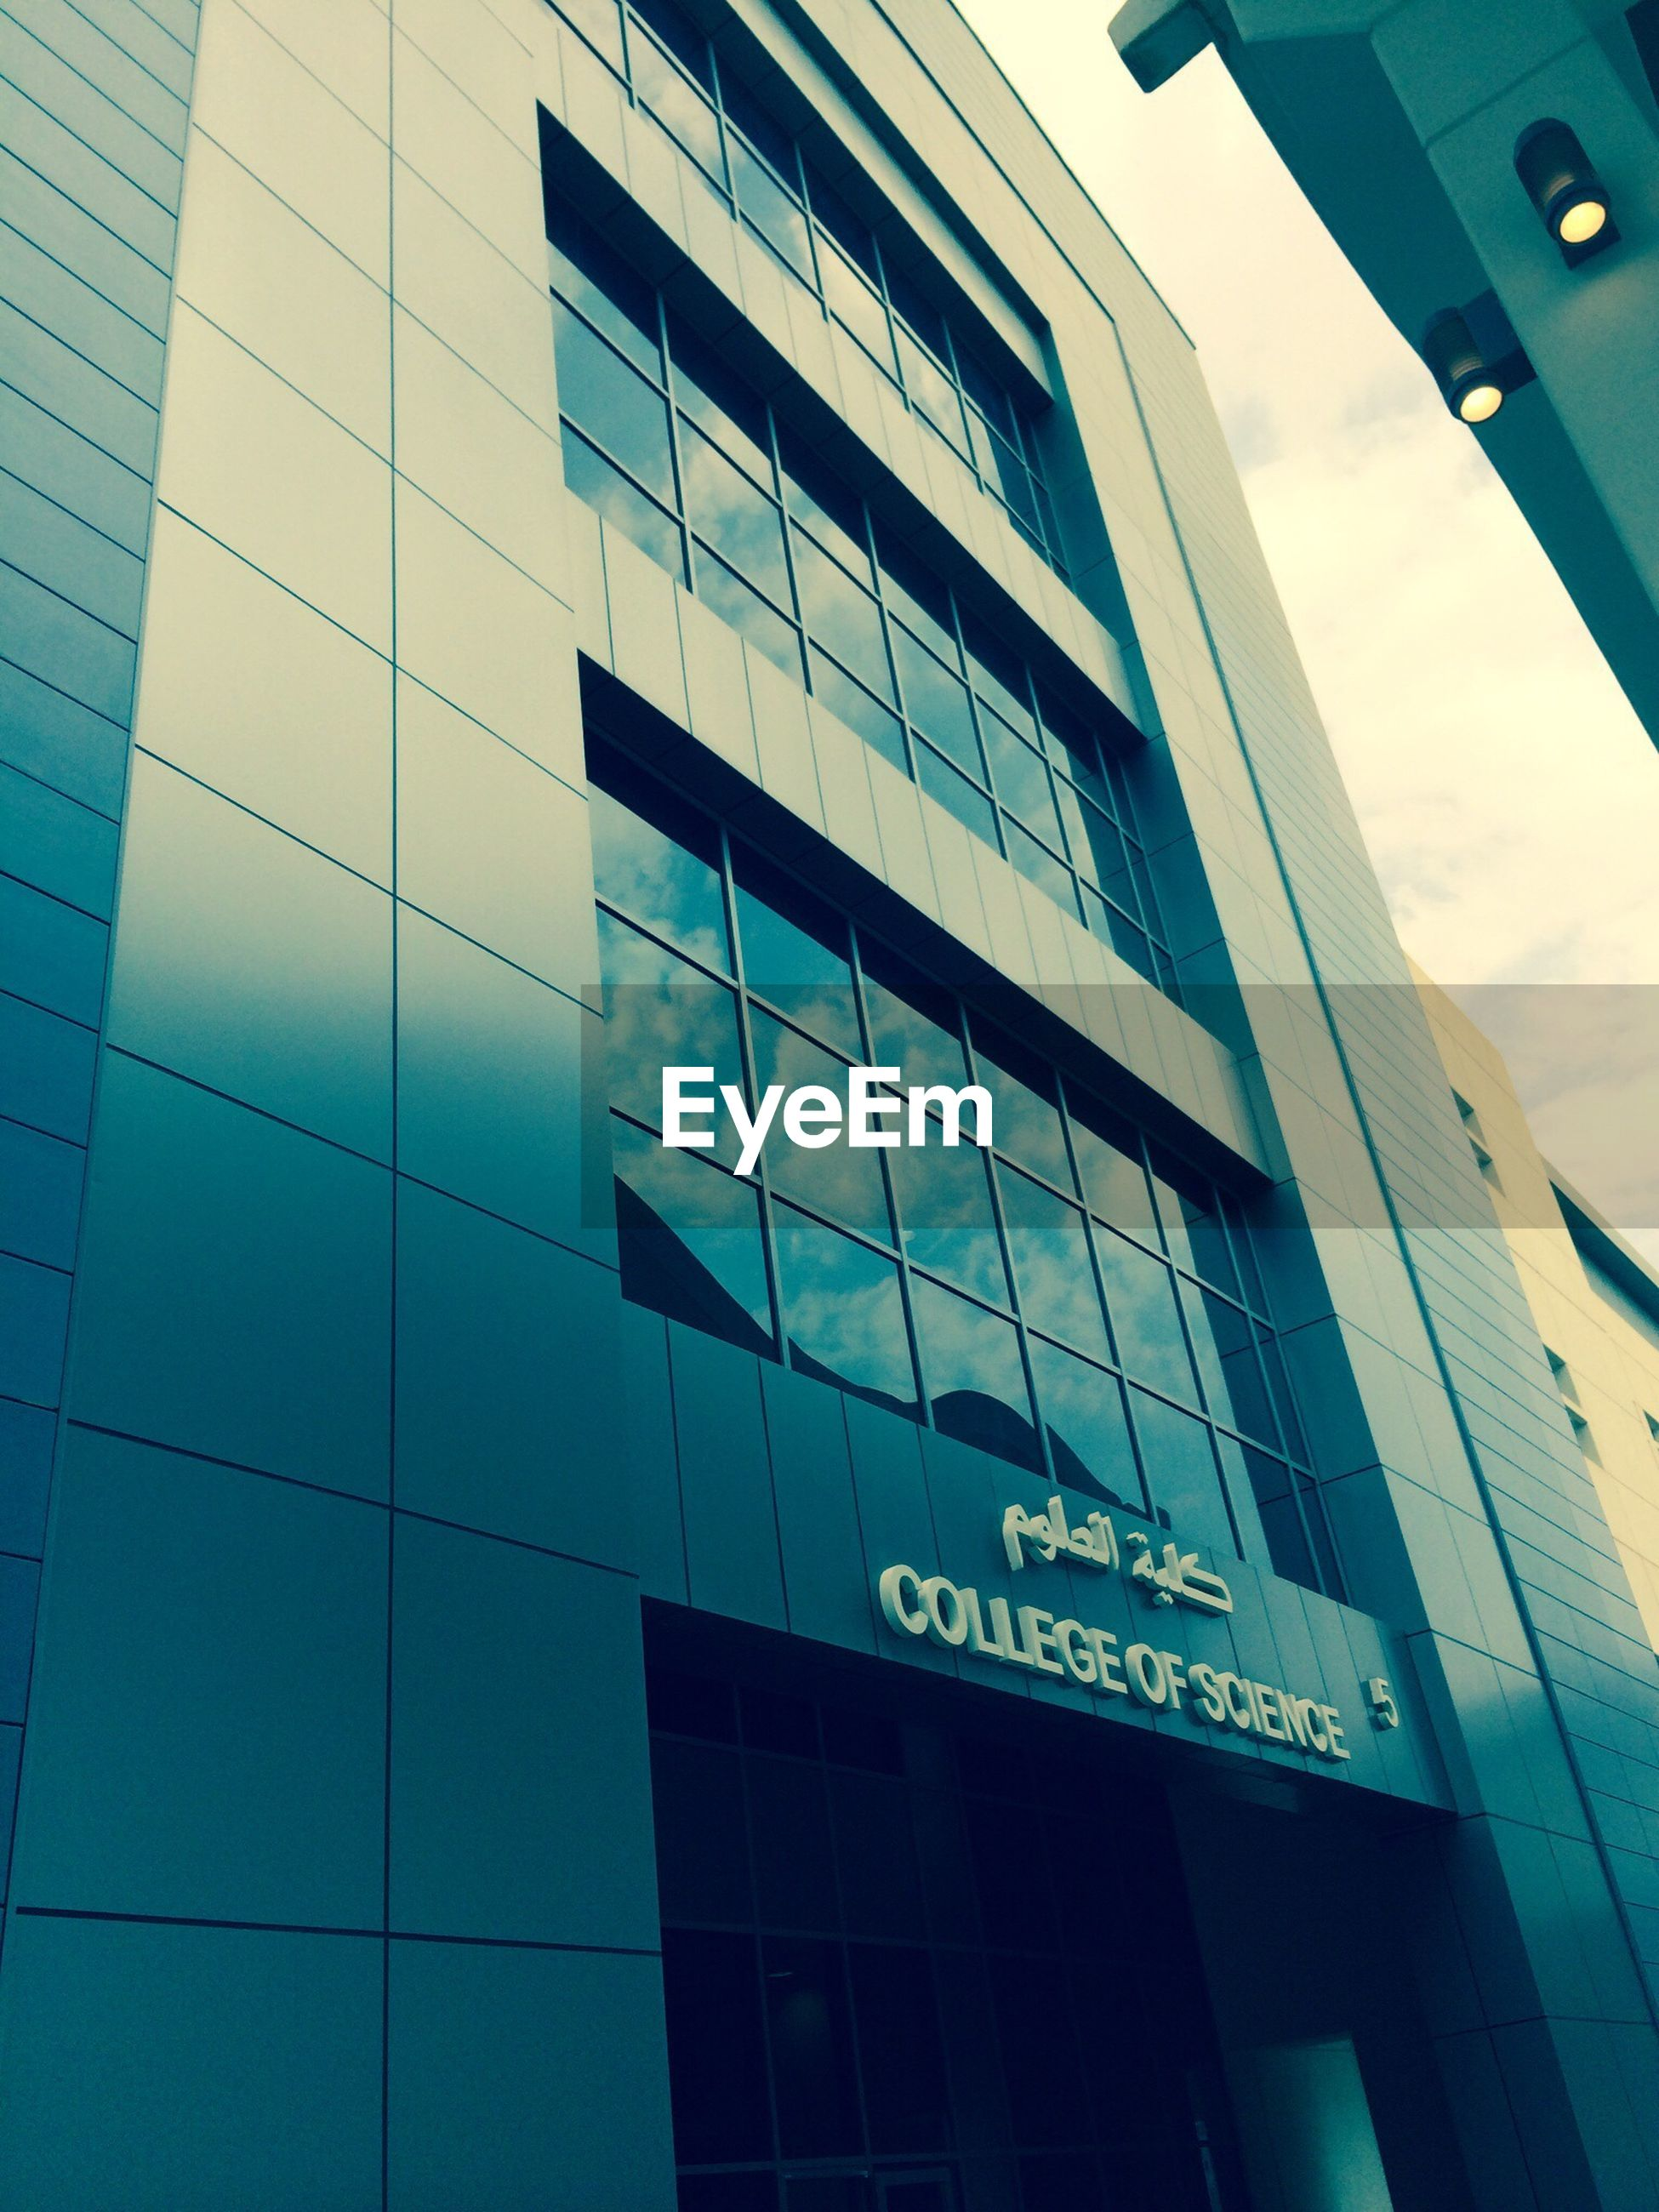 architecture, building exterior, low angle view, built structure, modern, office building, city, building, glass - material, window, reflection, text, communication, western script, skyscraper, sky, day, tall - high, city life, tower